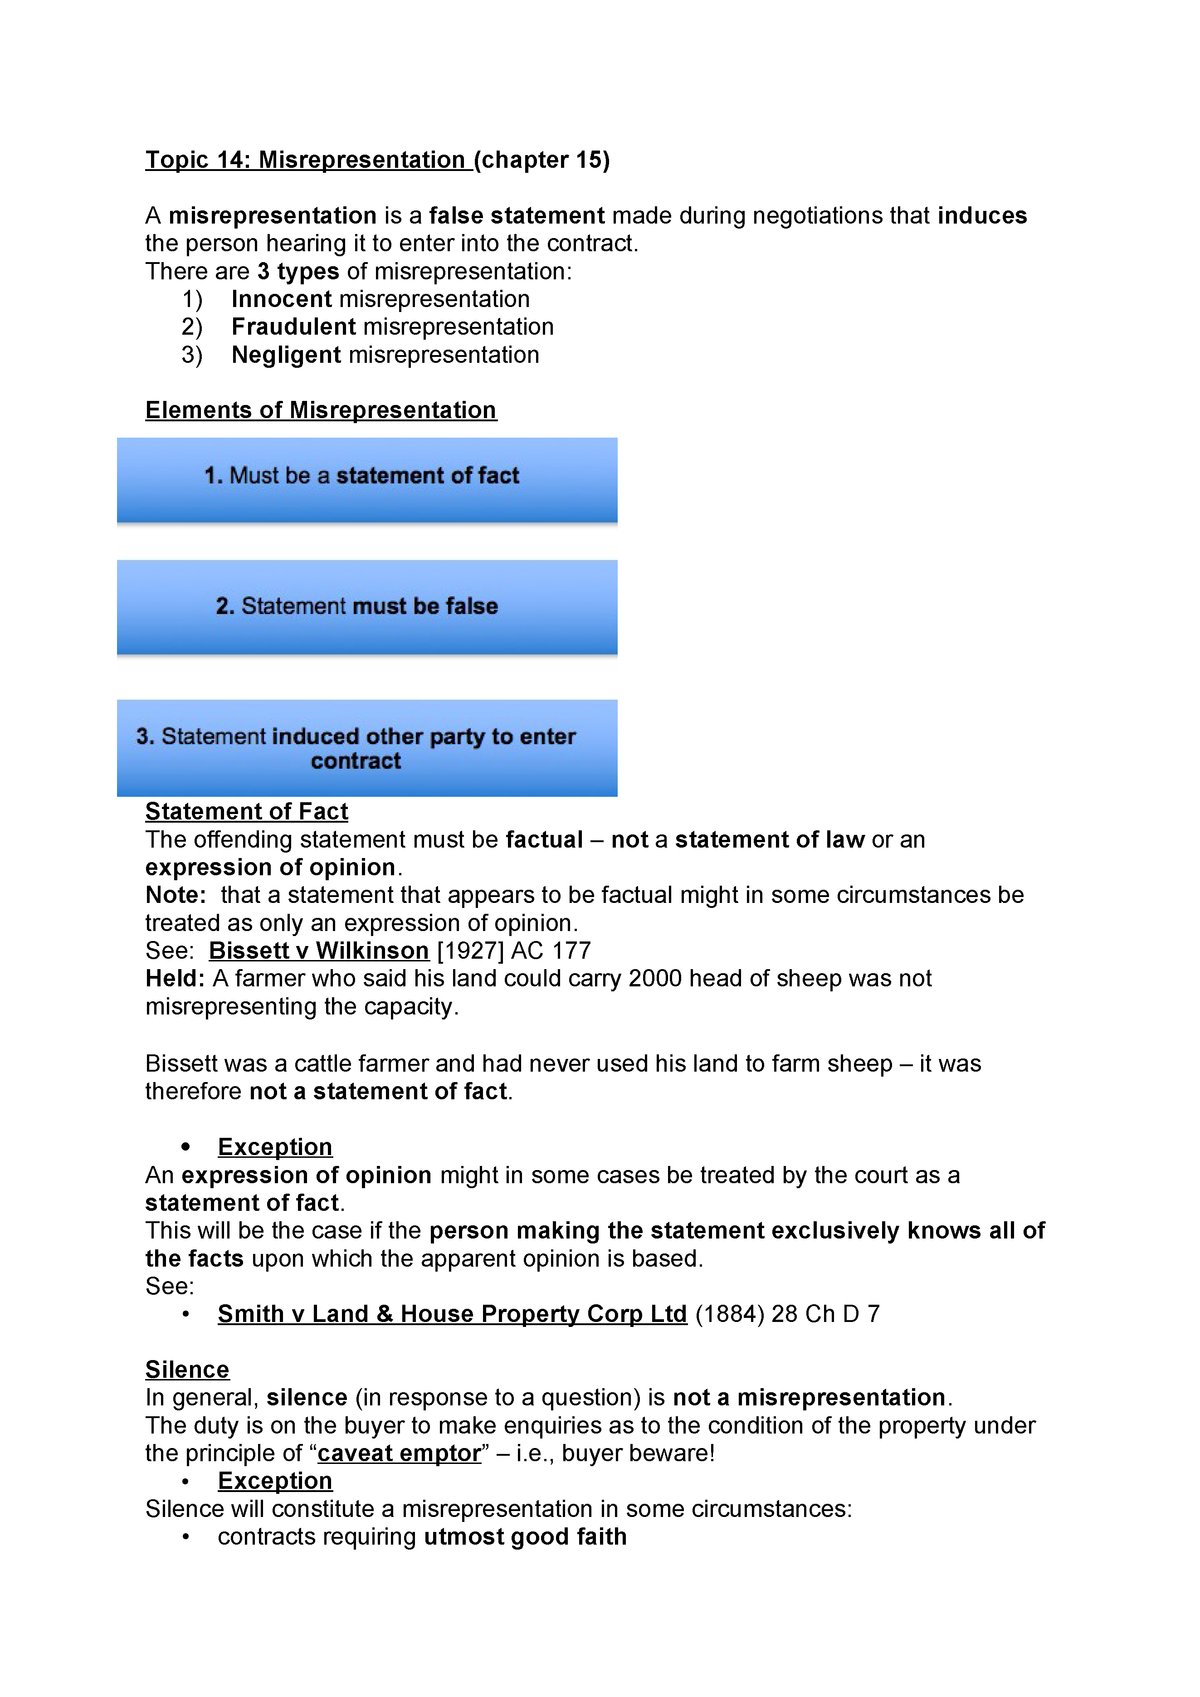 8 - Lecture notes and exam summary - BLO1105 Business law